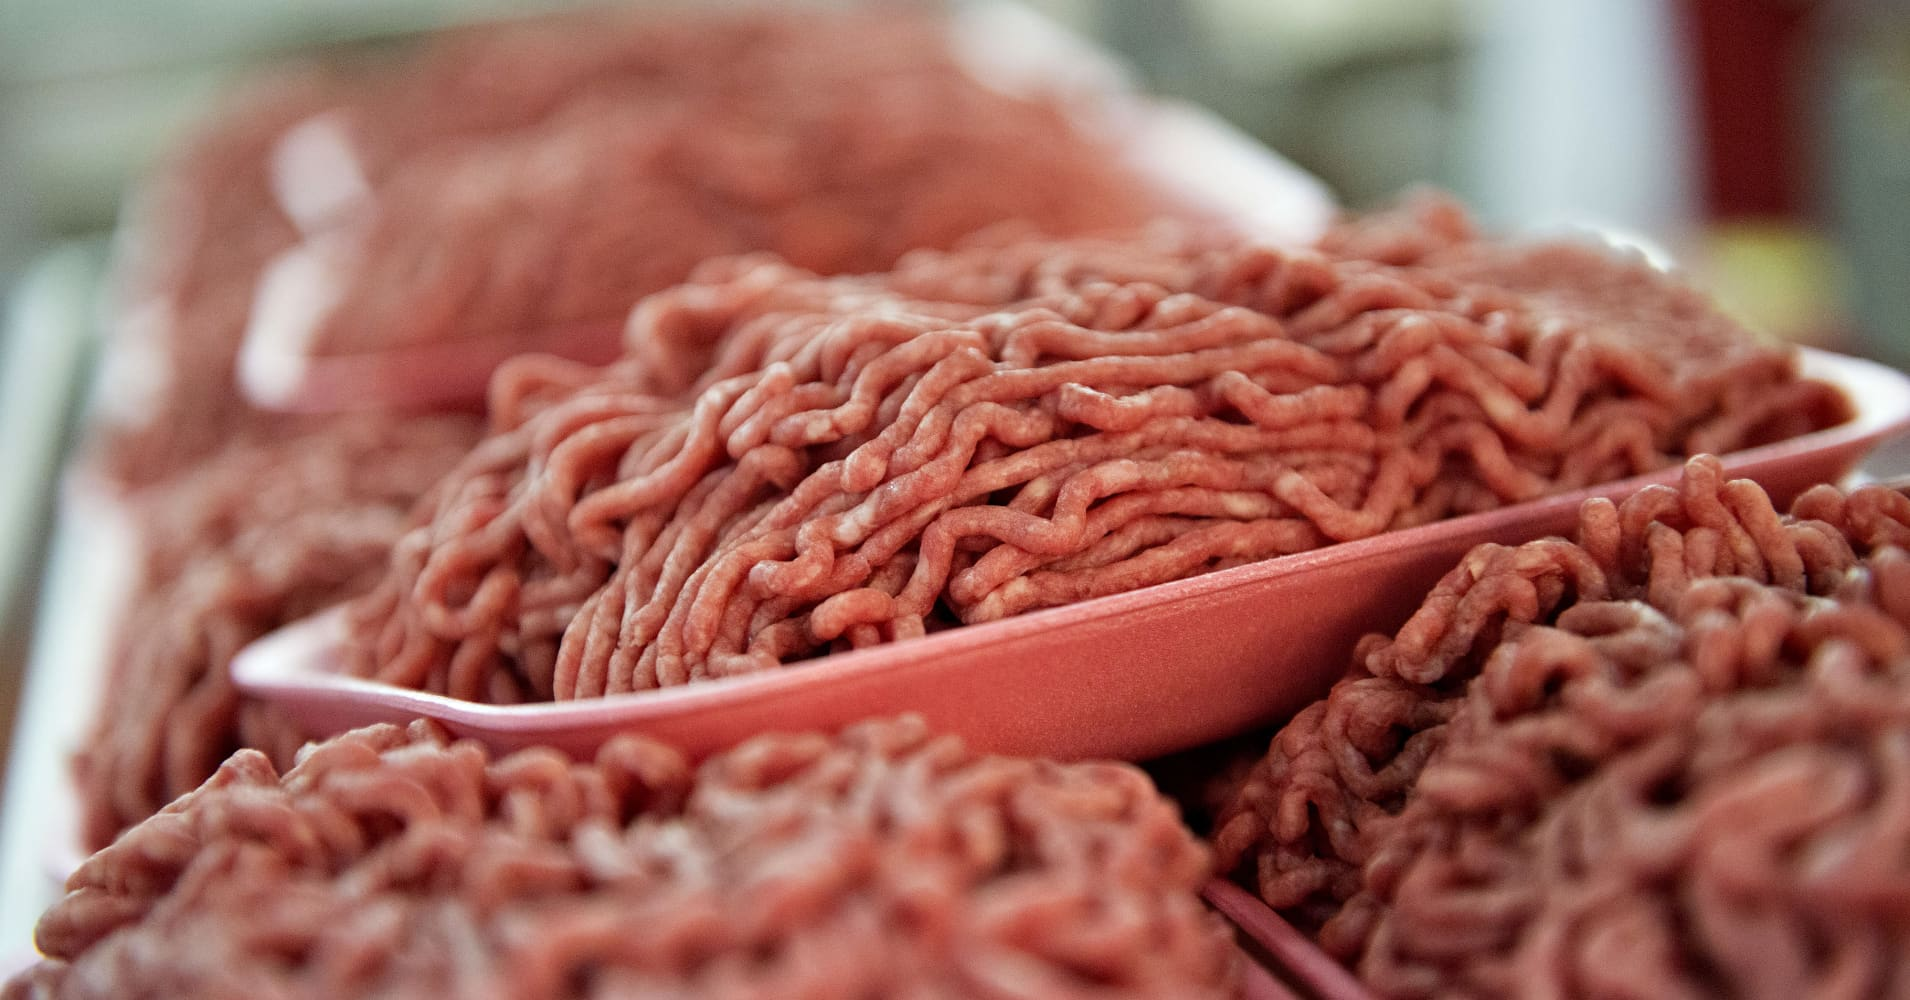 Feds expand beef recall as salmonella outbreak broadens to 246 cases in 26 states